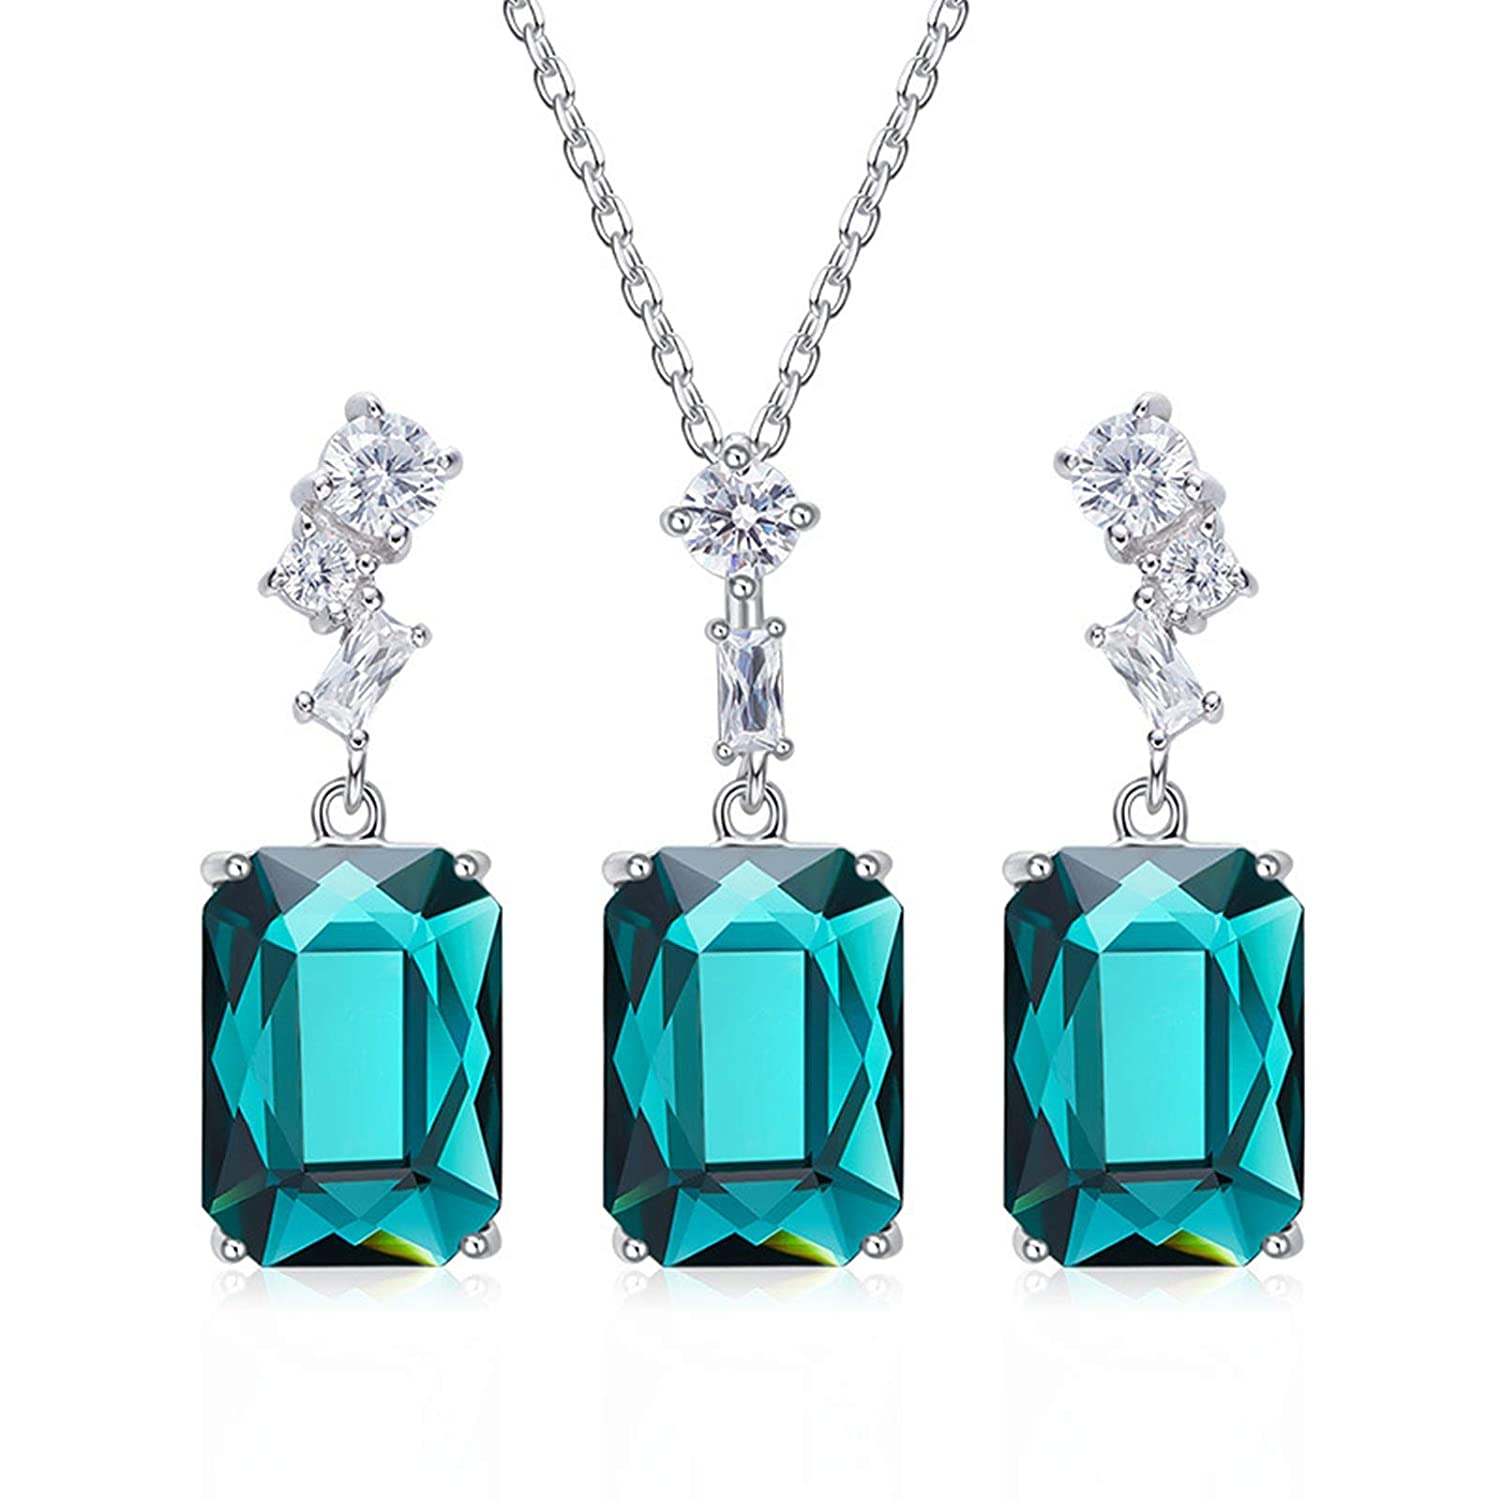 EoCot Silver Plated CZ Pendant Necklace Earrings Set with Australian Crystals Jewelry for Women